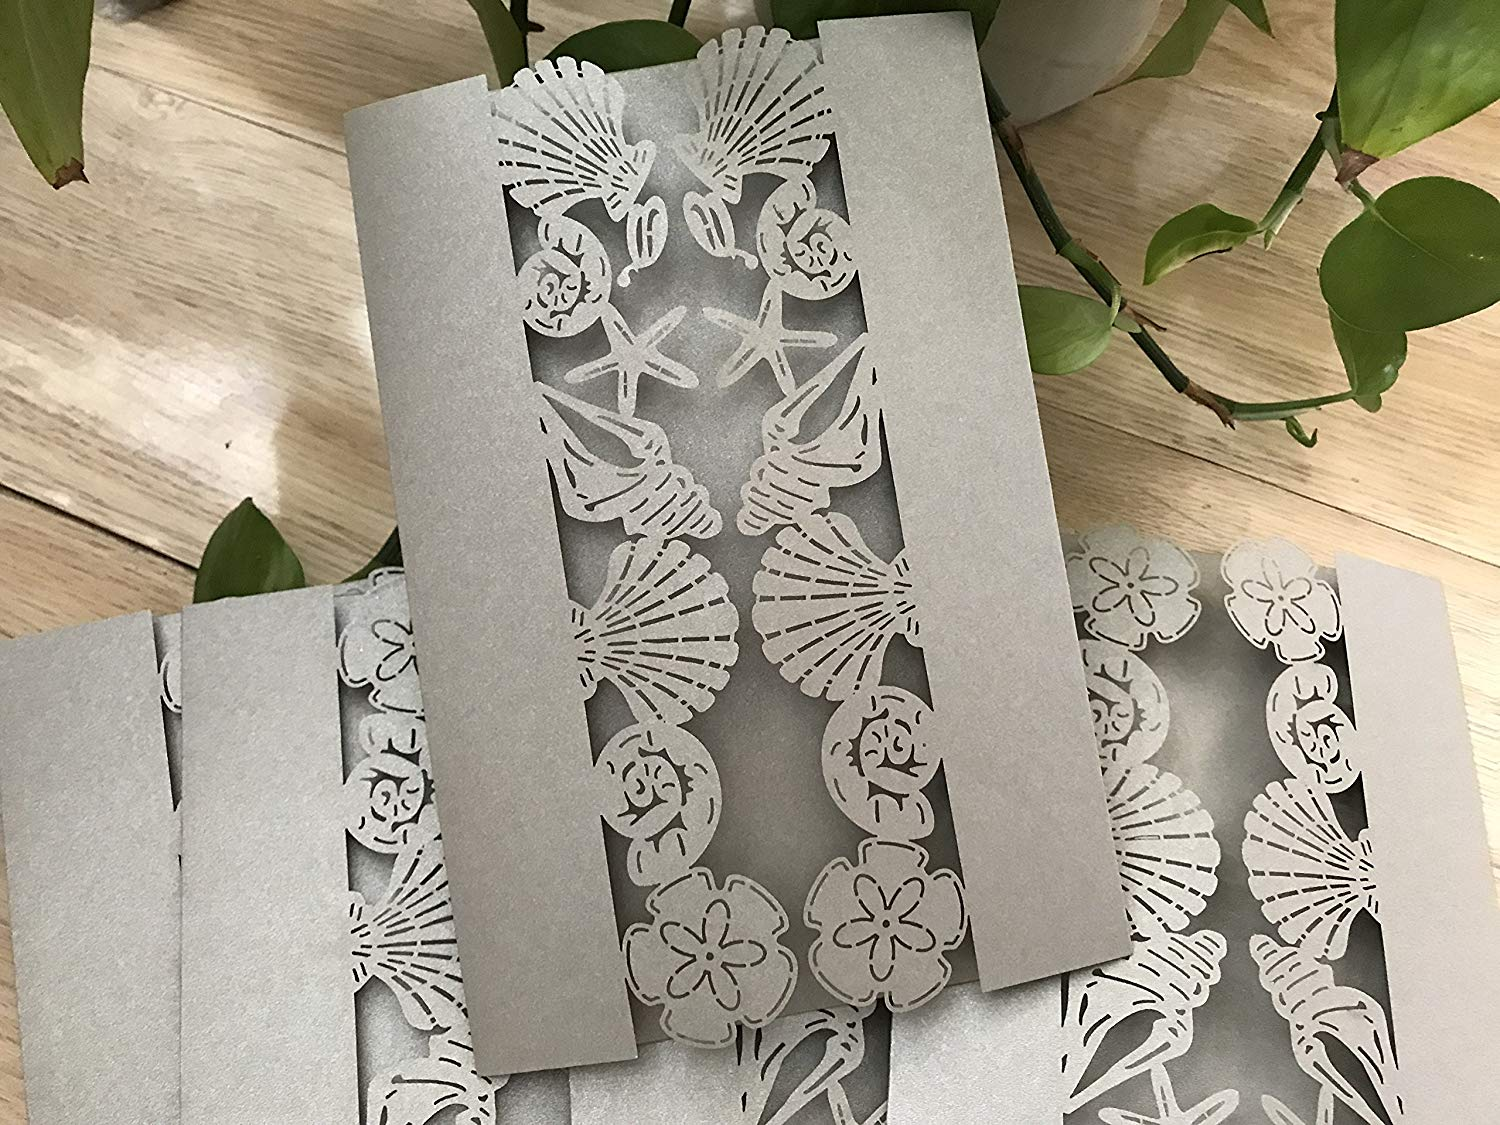 Pearl Silver Laser Cut Wedding Invitations,Seashell Wedding Invitation,Die Cut Laser Cut Wedding Cards,Invitation Cards,Seashell Invitation Covers,Wedding Cards,Invite,50pcs